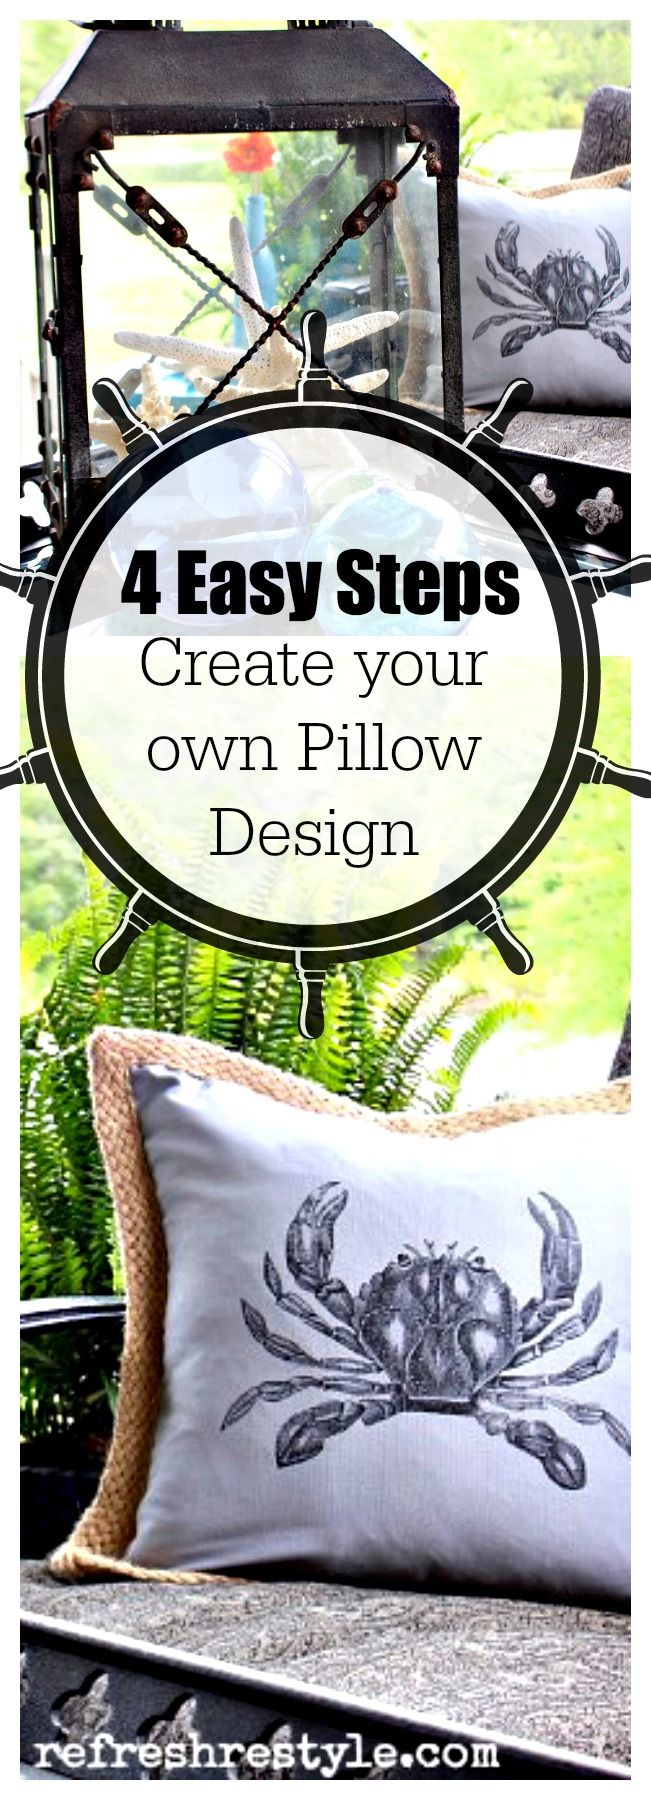 Easy DIY to create your own Pillow Graphics #diyproject #pillowcover #nosew